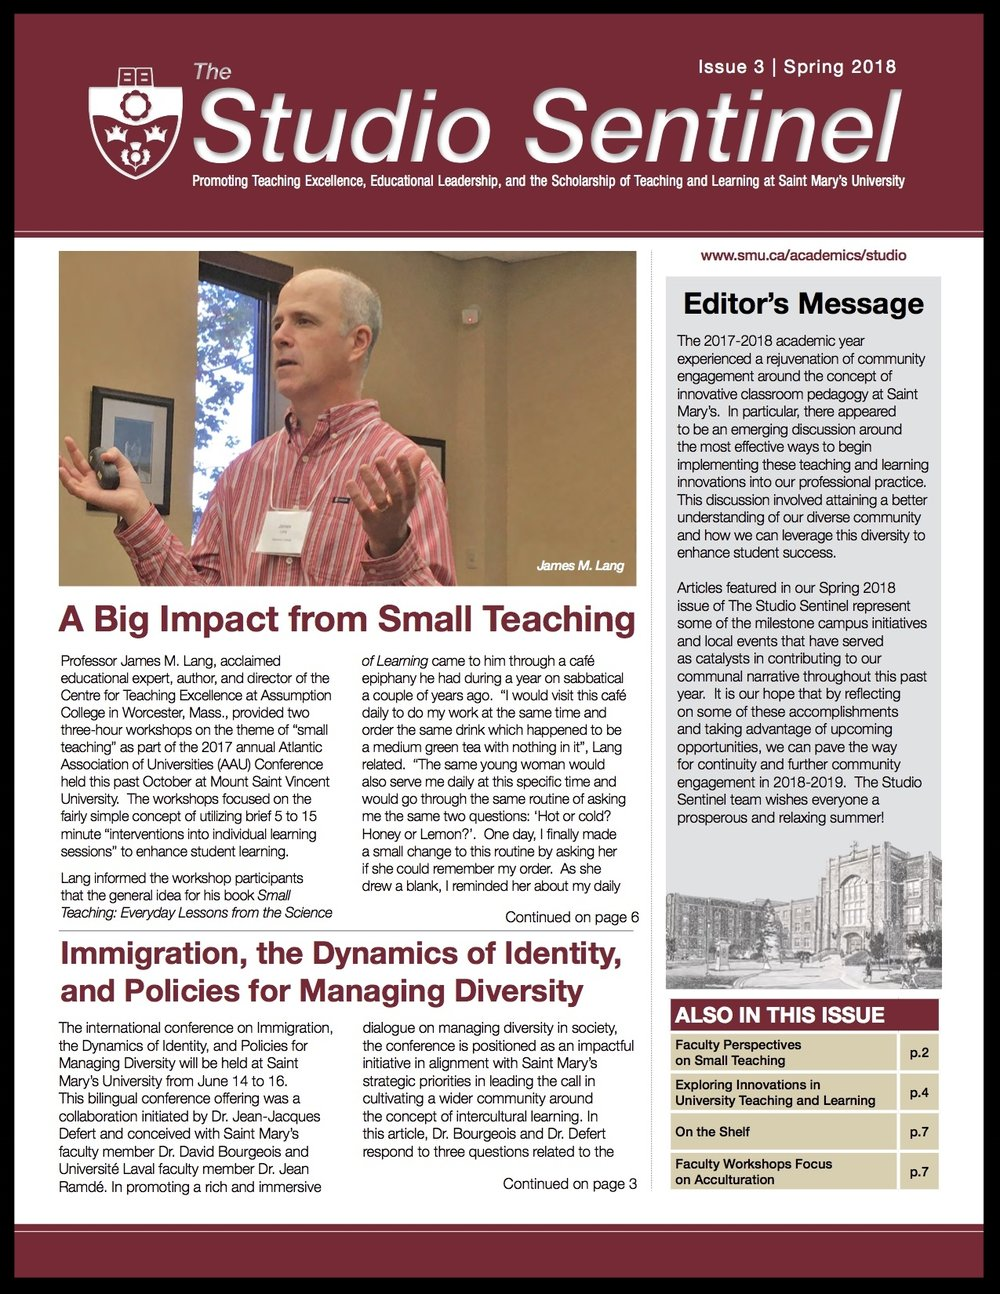 Issue 3: Spring 2018 - A Big Impact from Small TeachingImmigration, the Dynamics of Identity, and Policies for Managing DiversityFaculty Perspectives on Small TeachingExploring Innovations in University Teaching and LearningOn the ShelfFaculty Workshops Focus on Acculturation